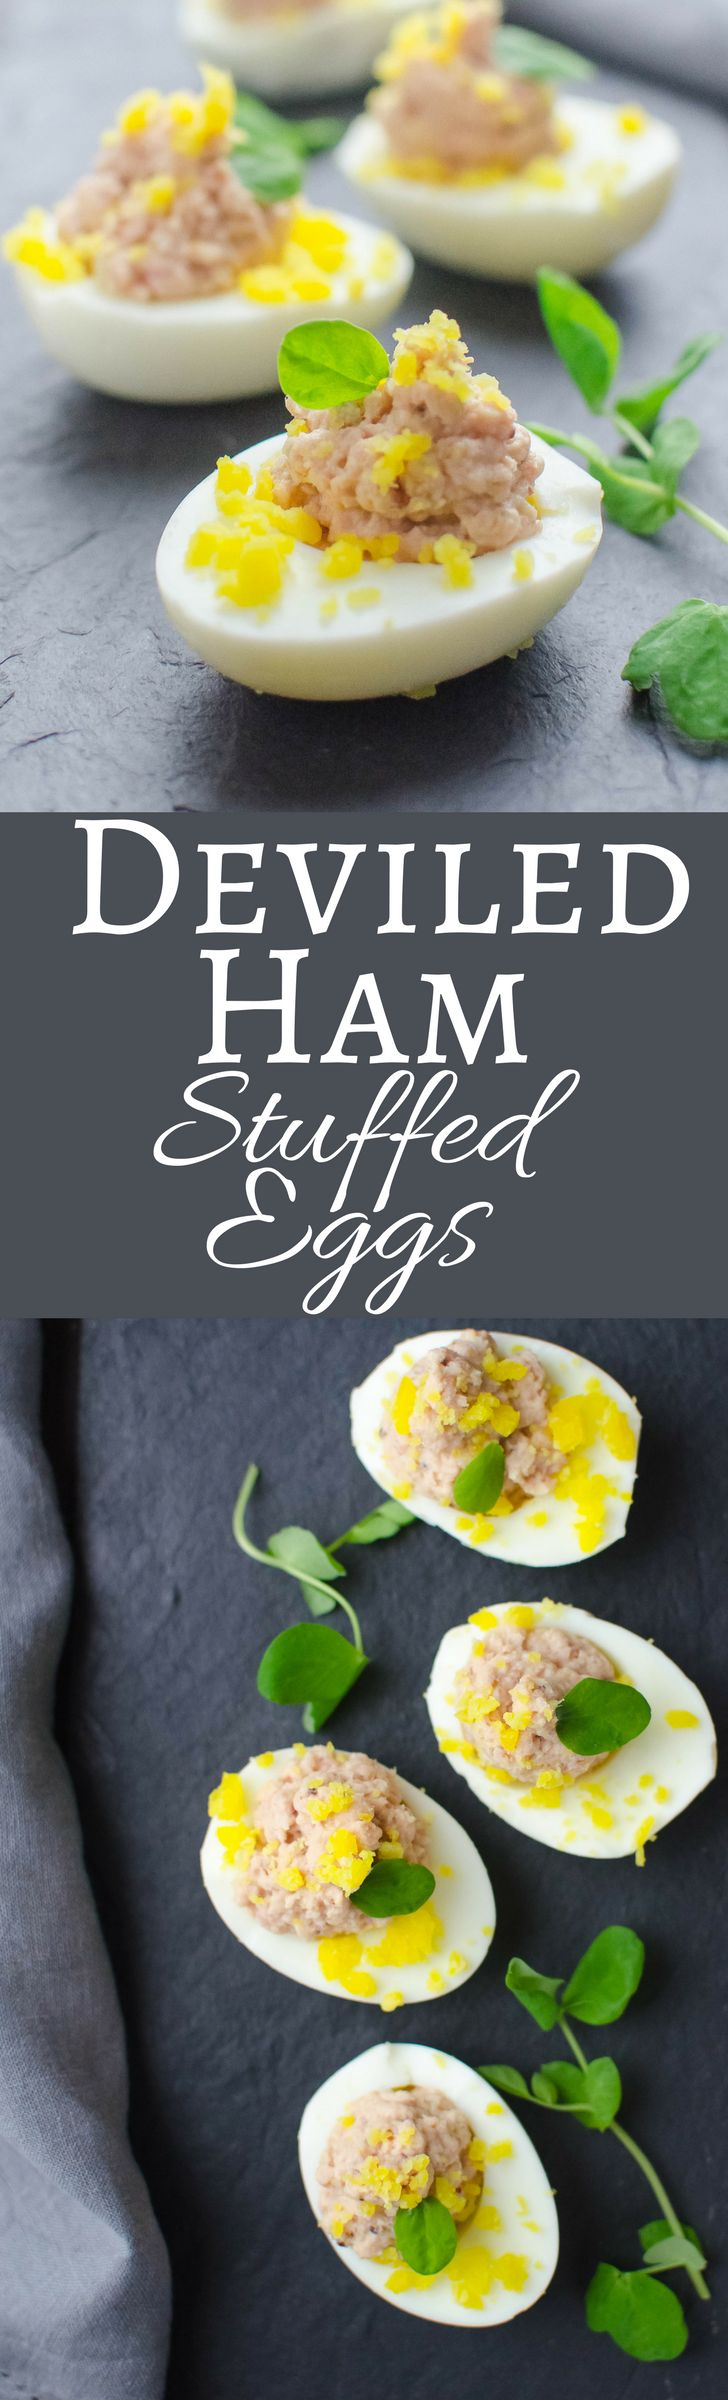 Not Yo Momma's Deviled Eggs! These are filled with savory deviled ham! Easy recipe!